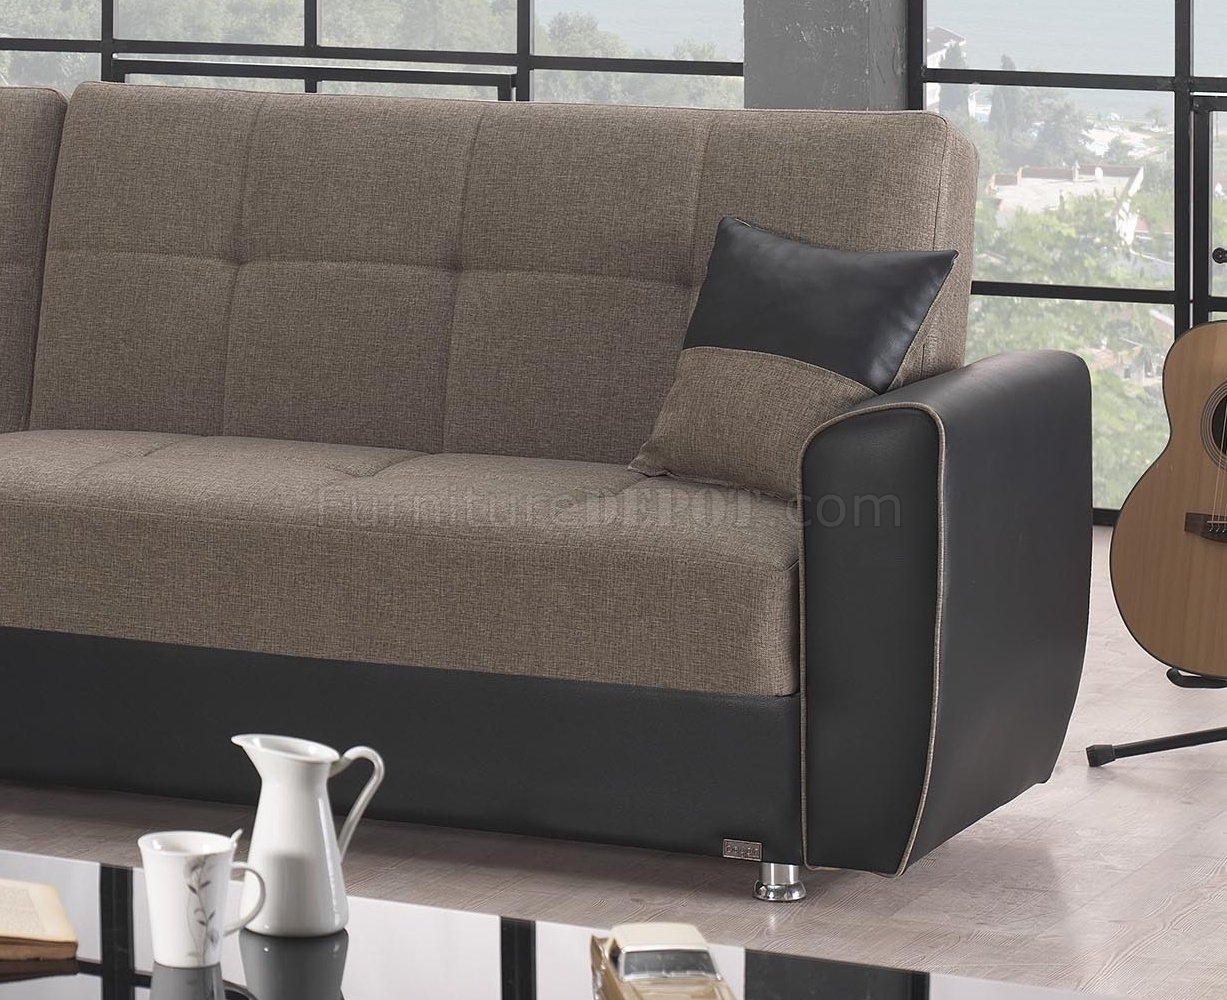 Incredible Sectional Sofas Maryland – Mediasupload Pertaining To Maryland Sofas (View 3 of 10)